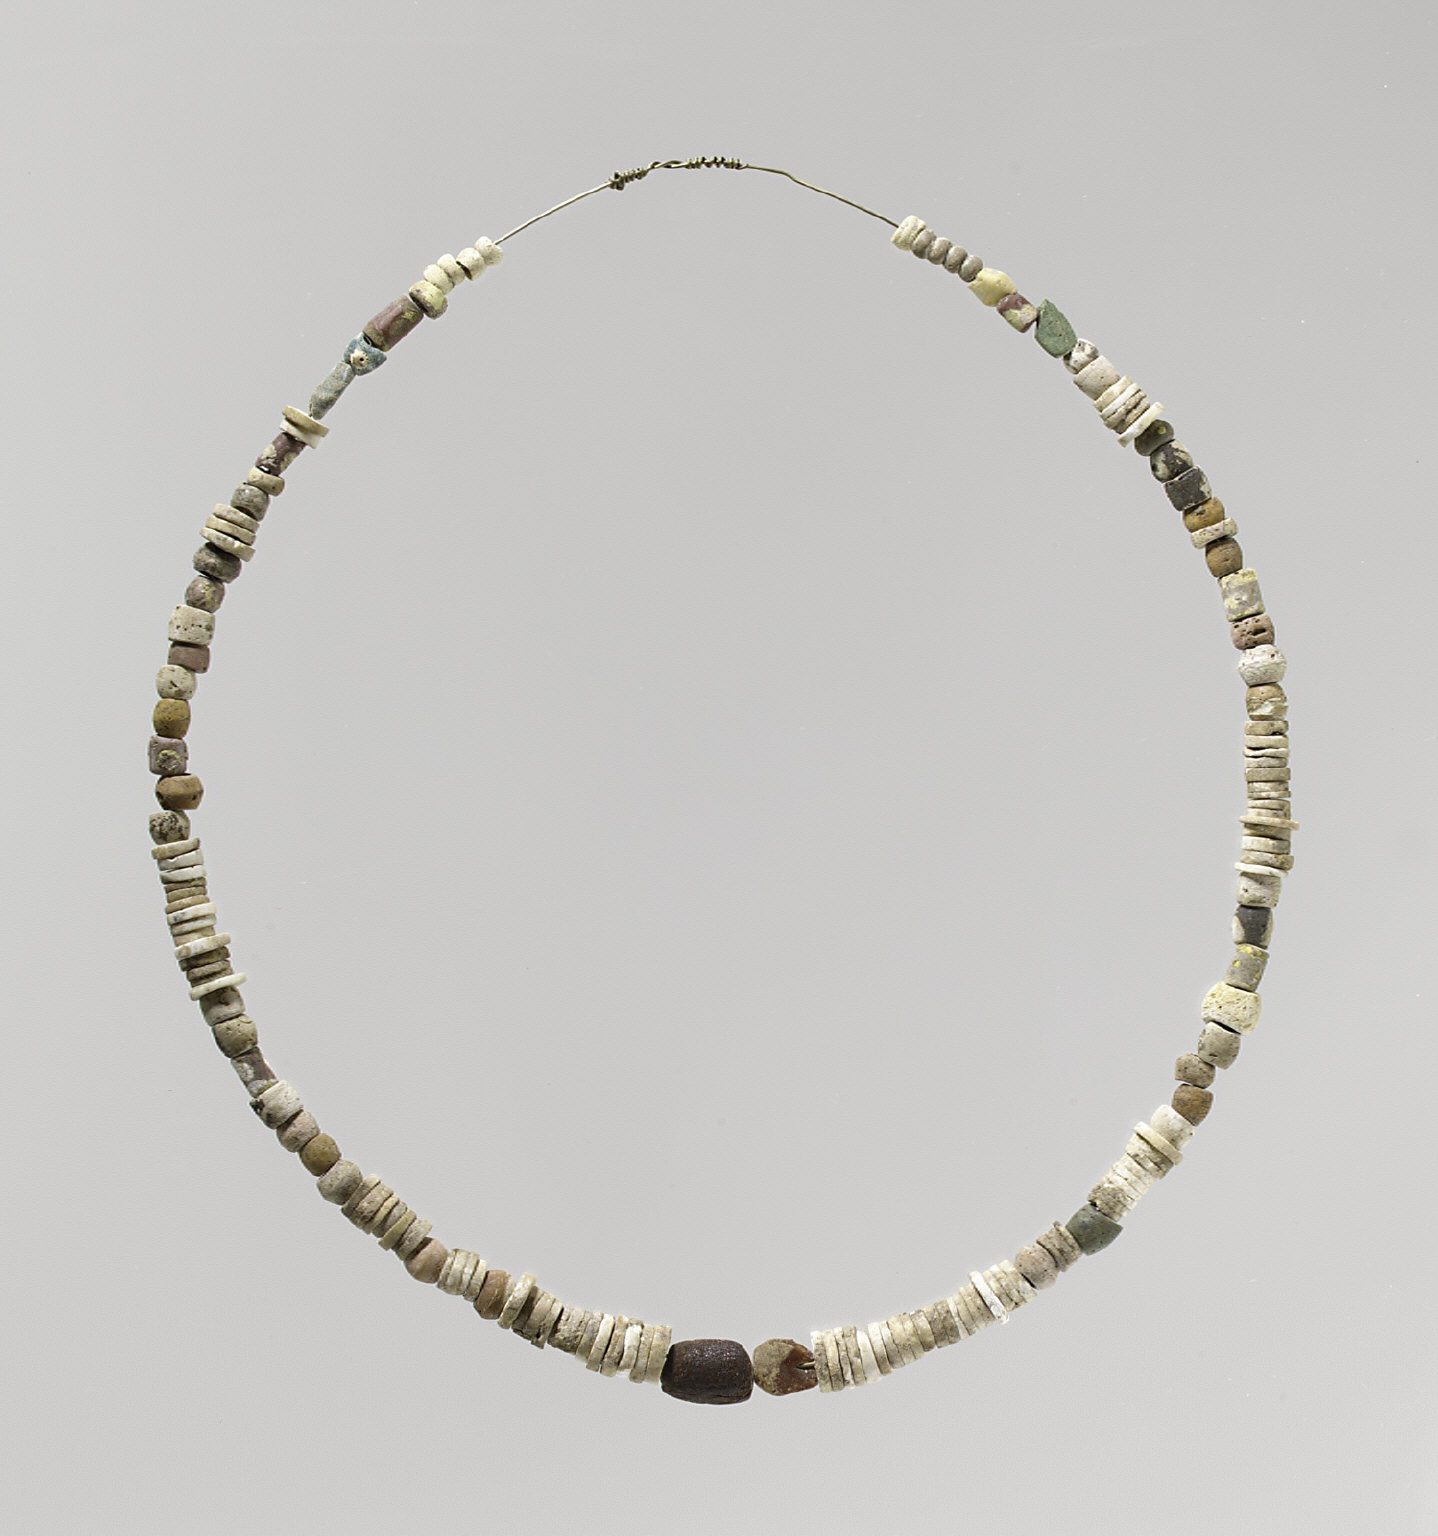 Beads from a Necklace